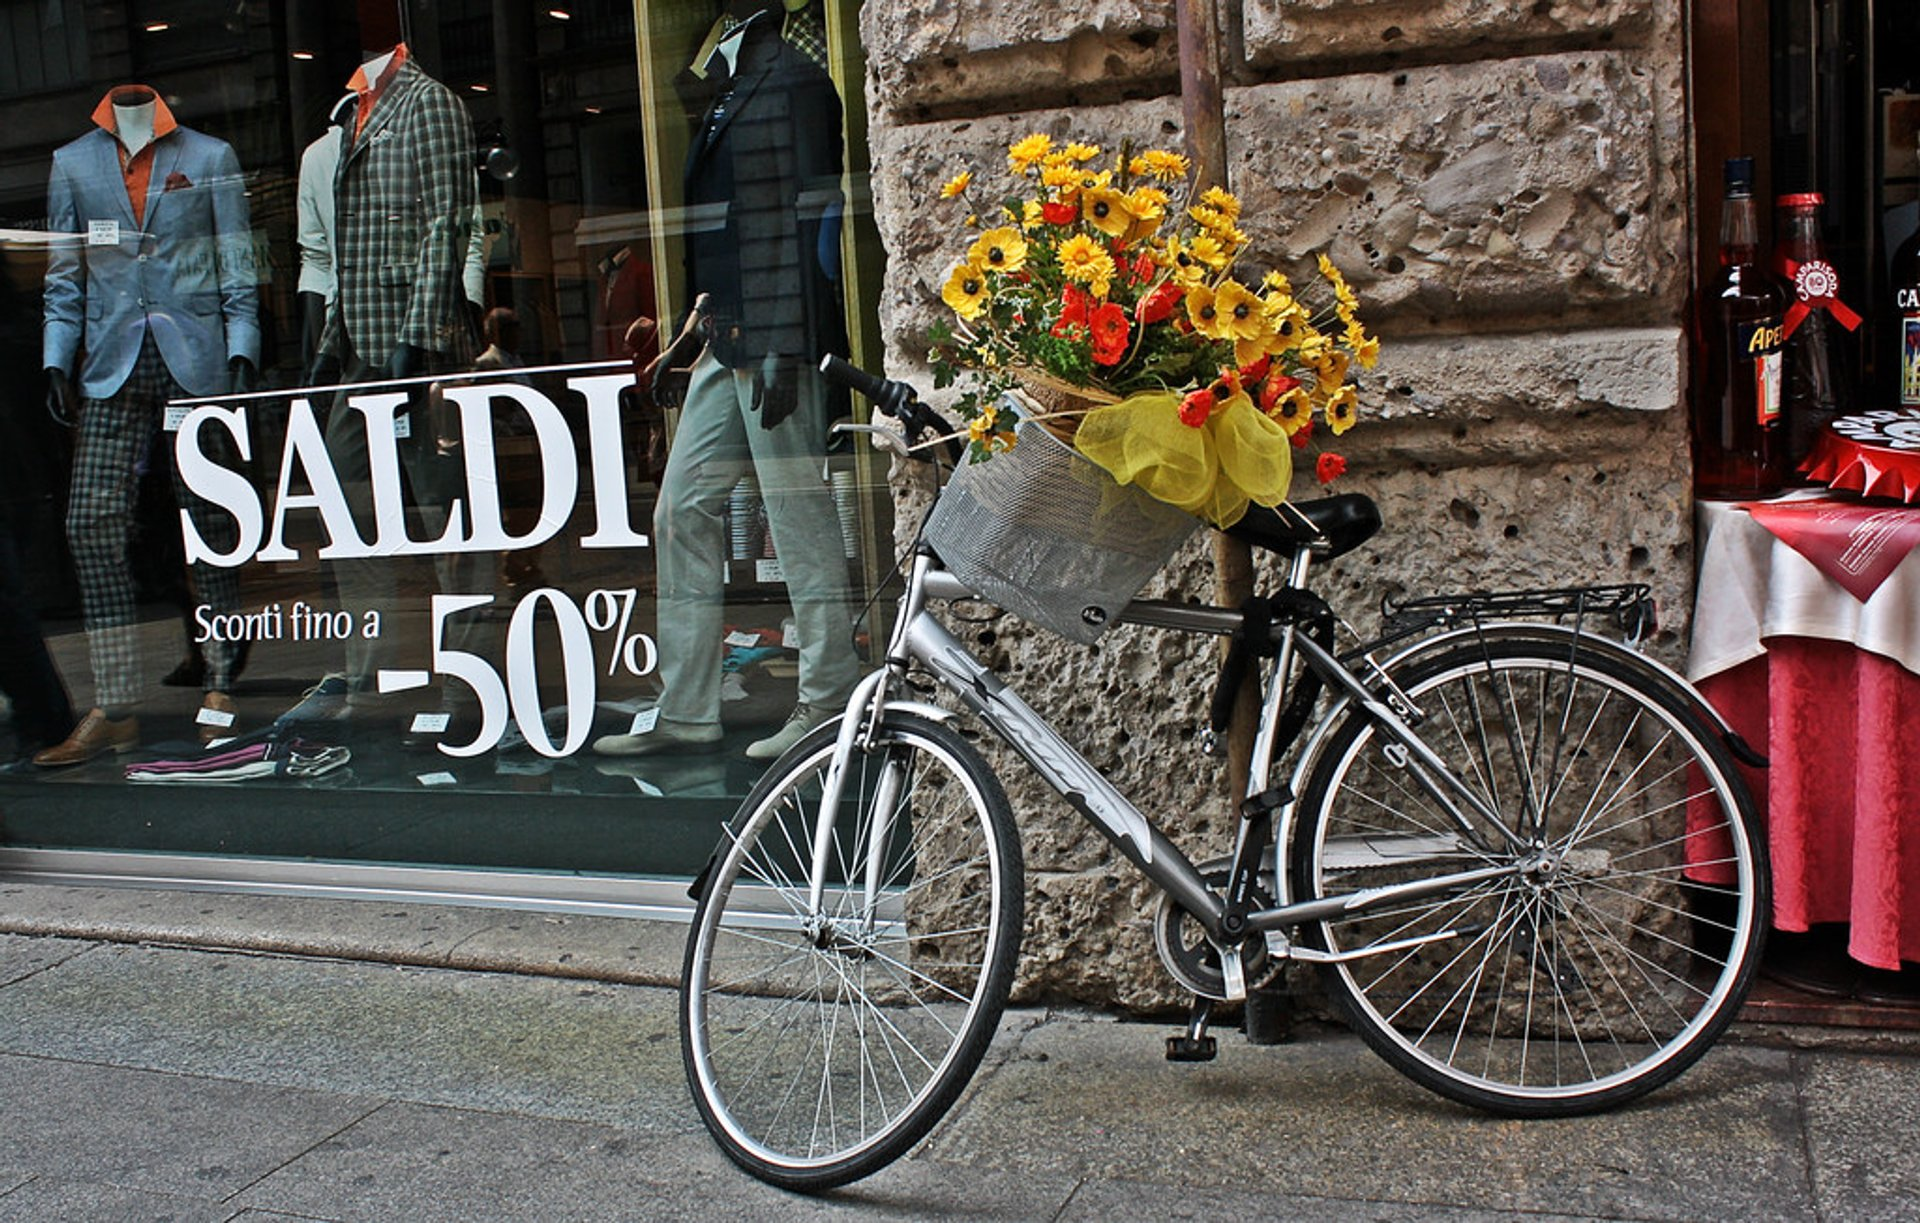 Winter & Summer Sales (Saldi) in Milan - Best Season 2020